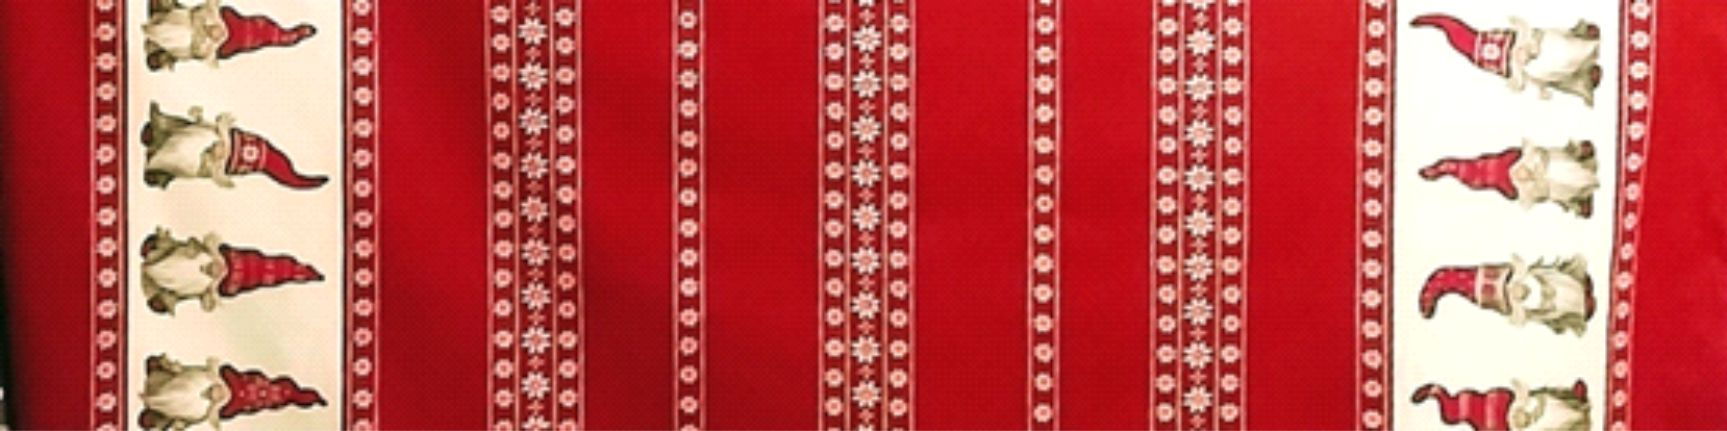 Fabric 17.  Table Cloth - Red with Tomte and Flower Border